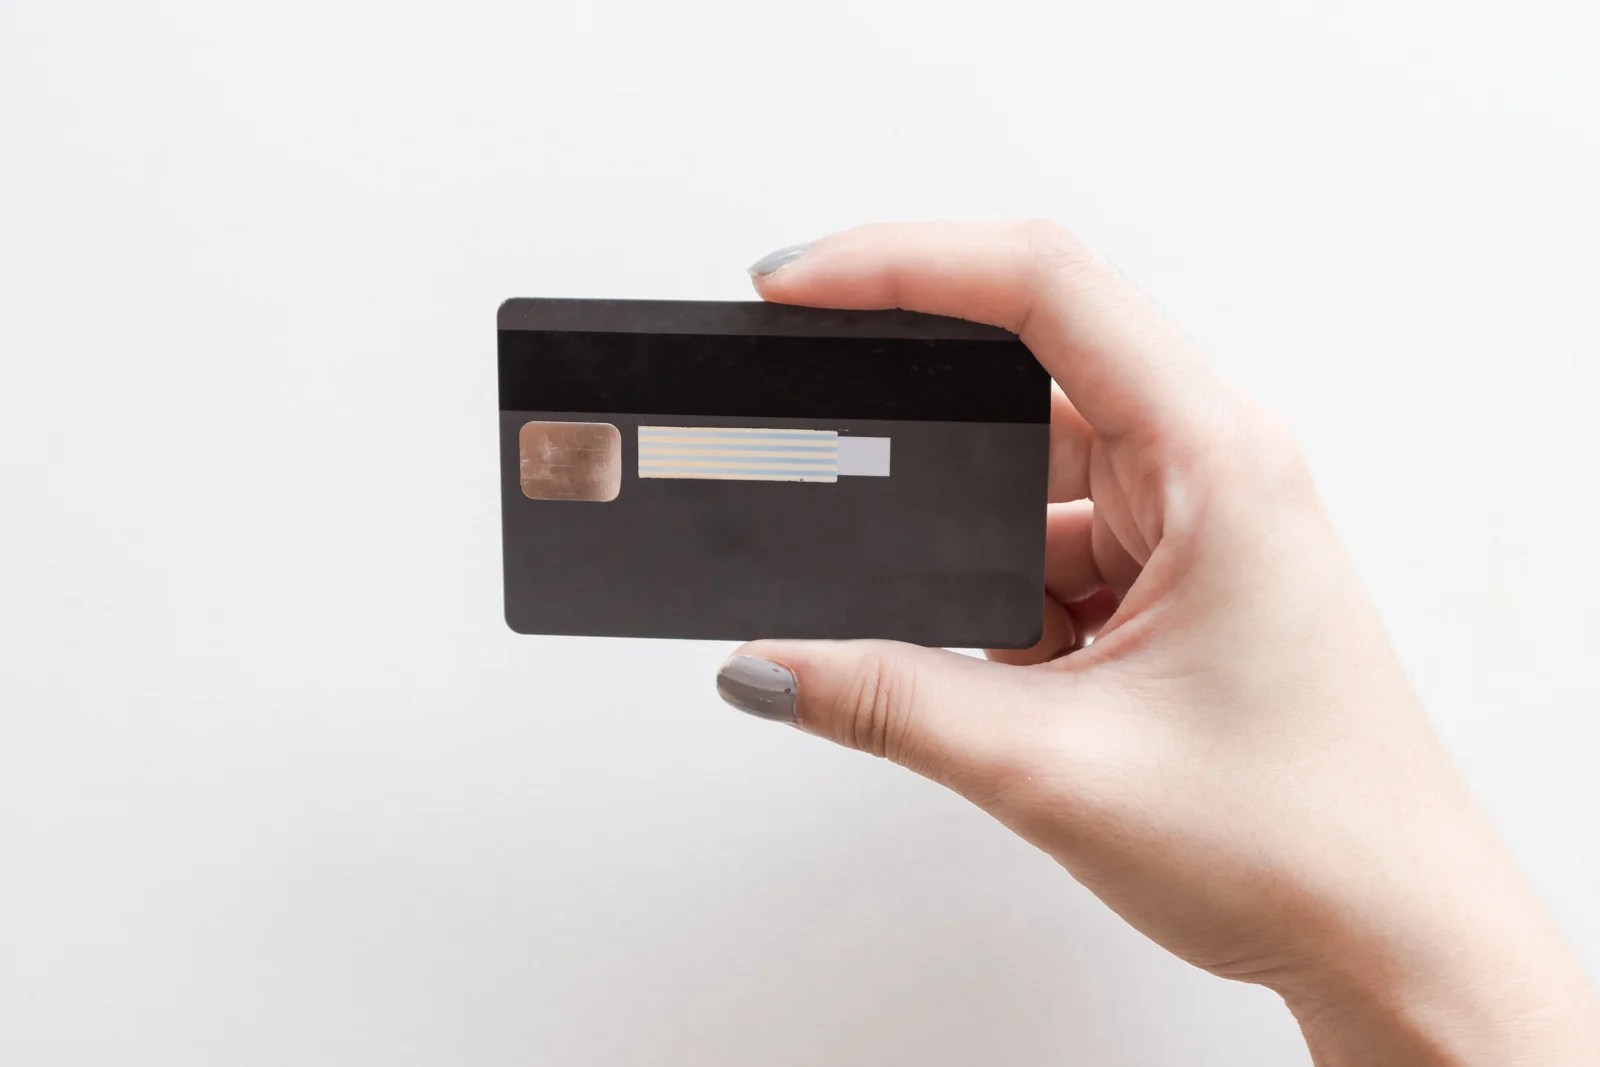 Why Do I Need to Sign the Back of My Credit Card?